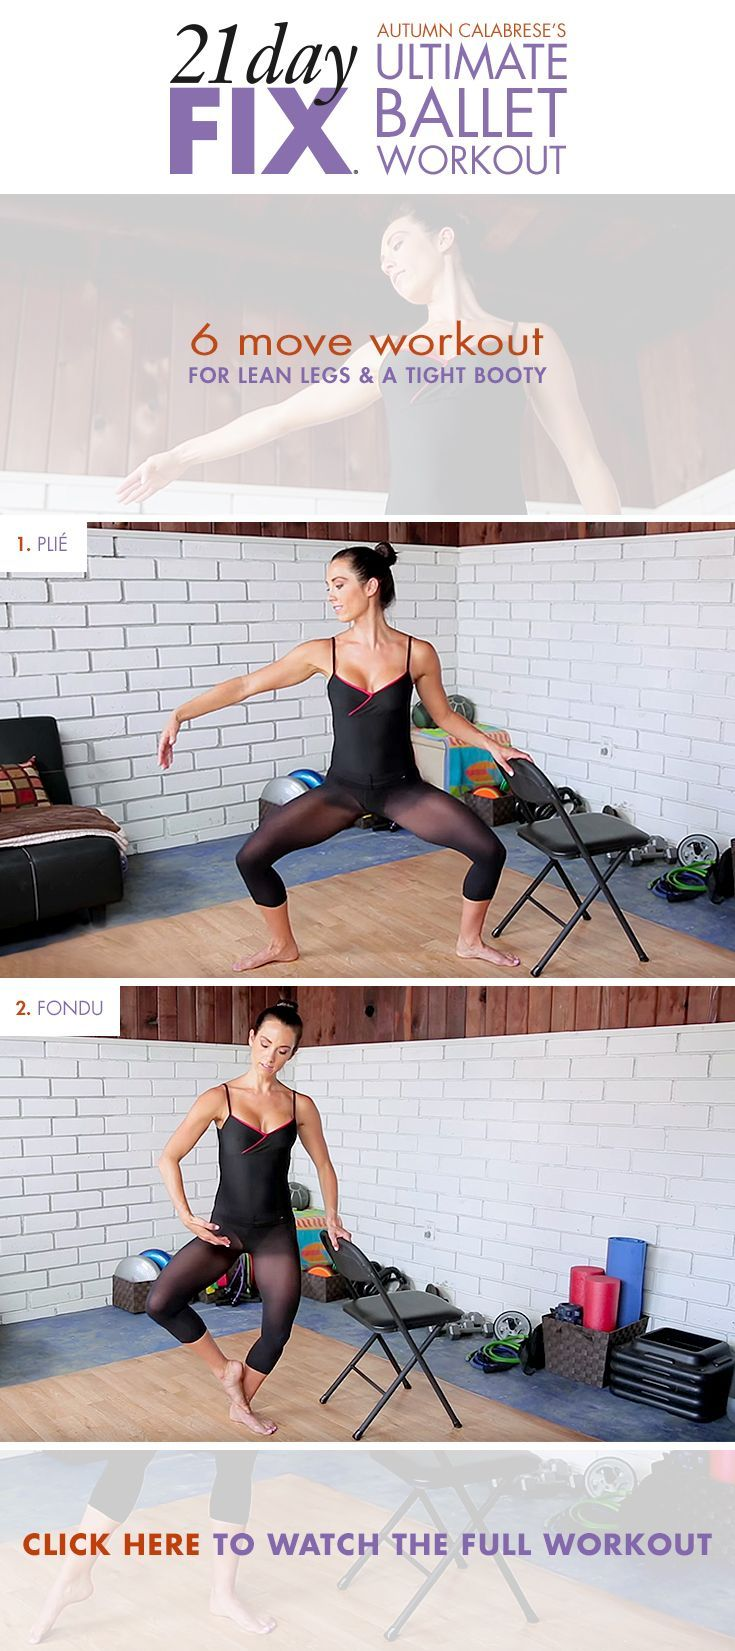 Strengthen your core & lower body with our favorite moves from Autumn's Ballet Workout! // 21 Day Fix // 21 Day Fix Extreme // fitness // fitspo // workout // motivation // exercise // Inspiration // barre // ballet // strength training // fitfam //fixfam // fit //